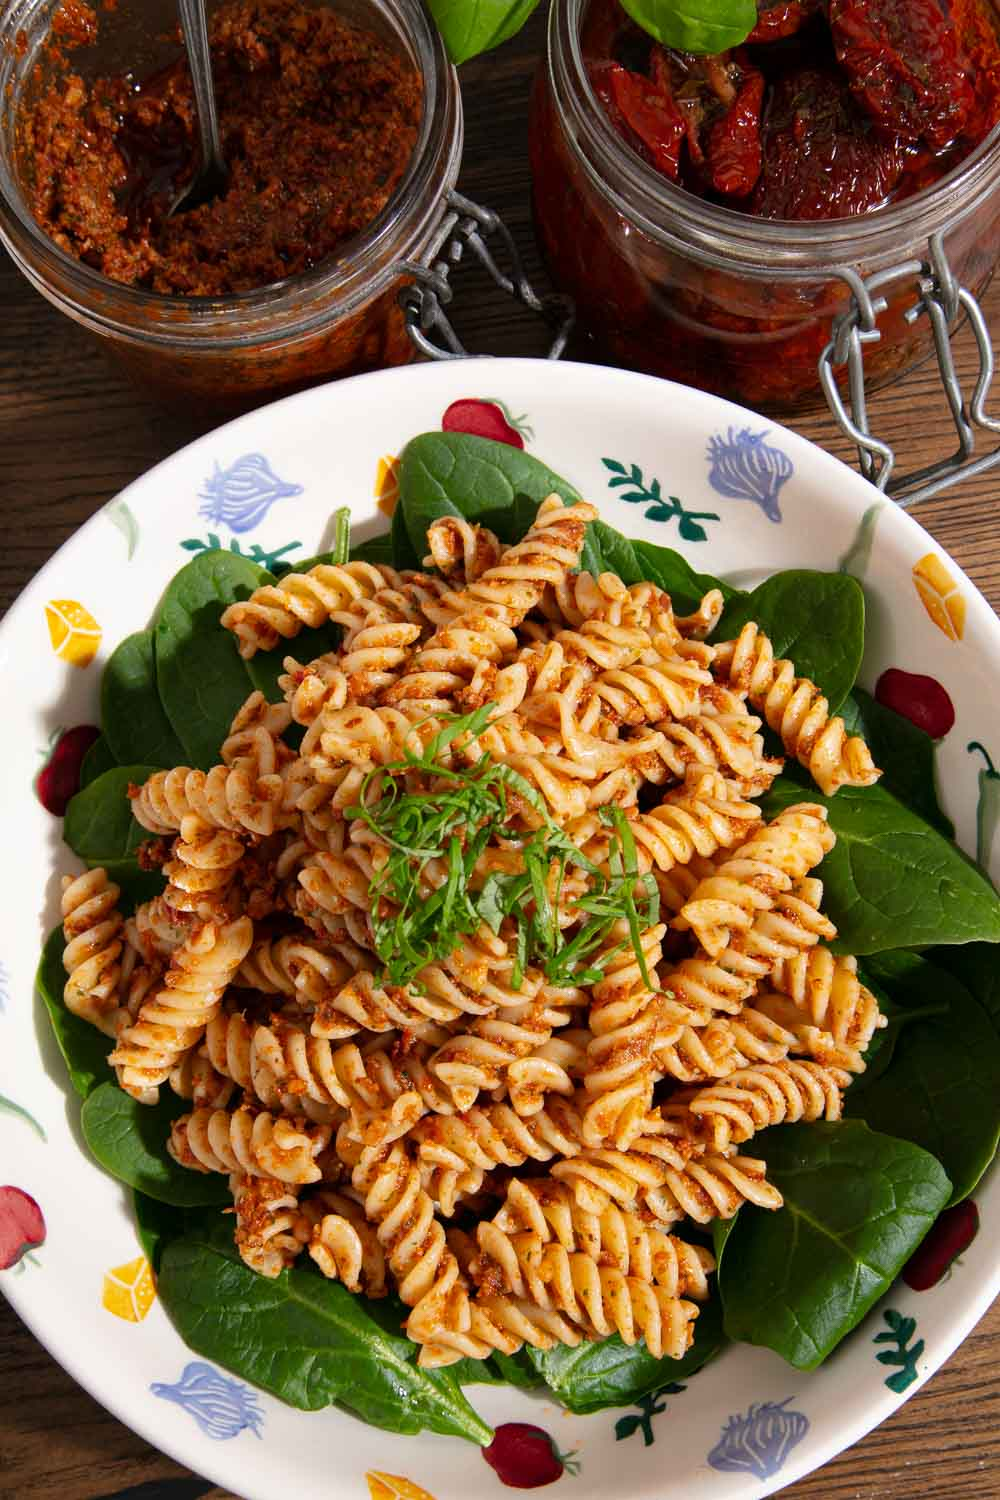 Red pesto pasta on a bed of fresh spinach leaves, a jar of homemade red pesto and a jar of sundried tomatoes in the background.